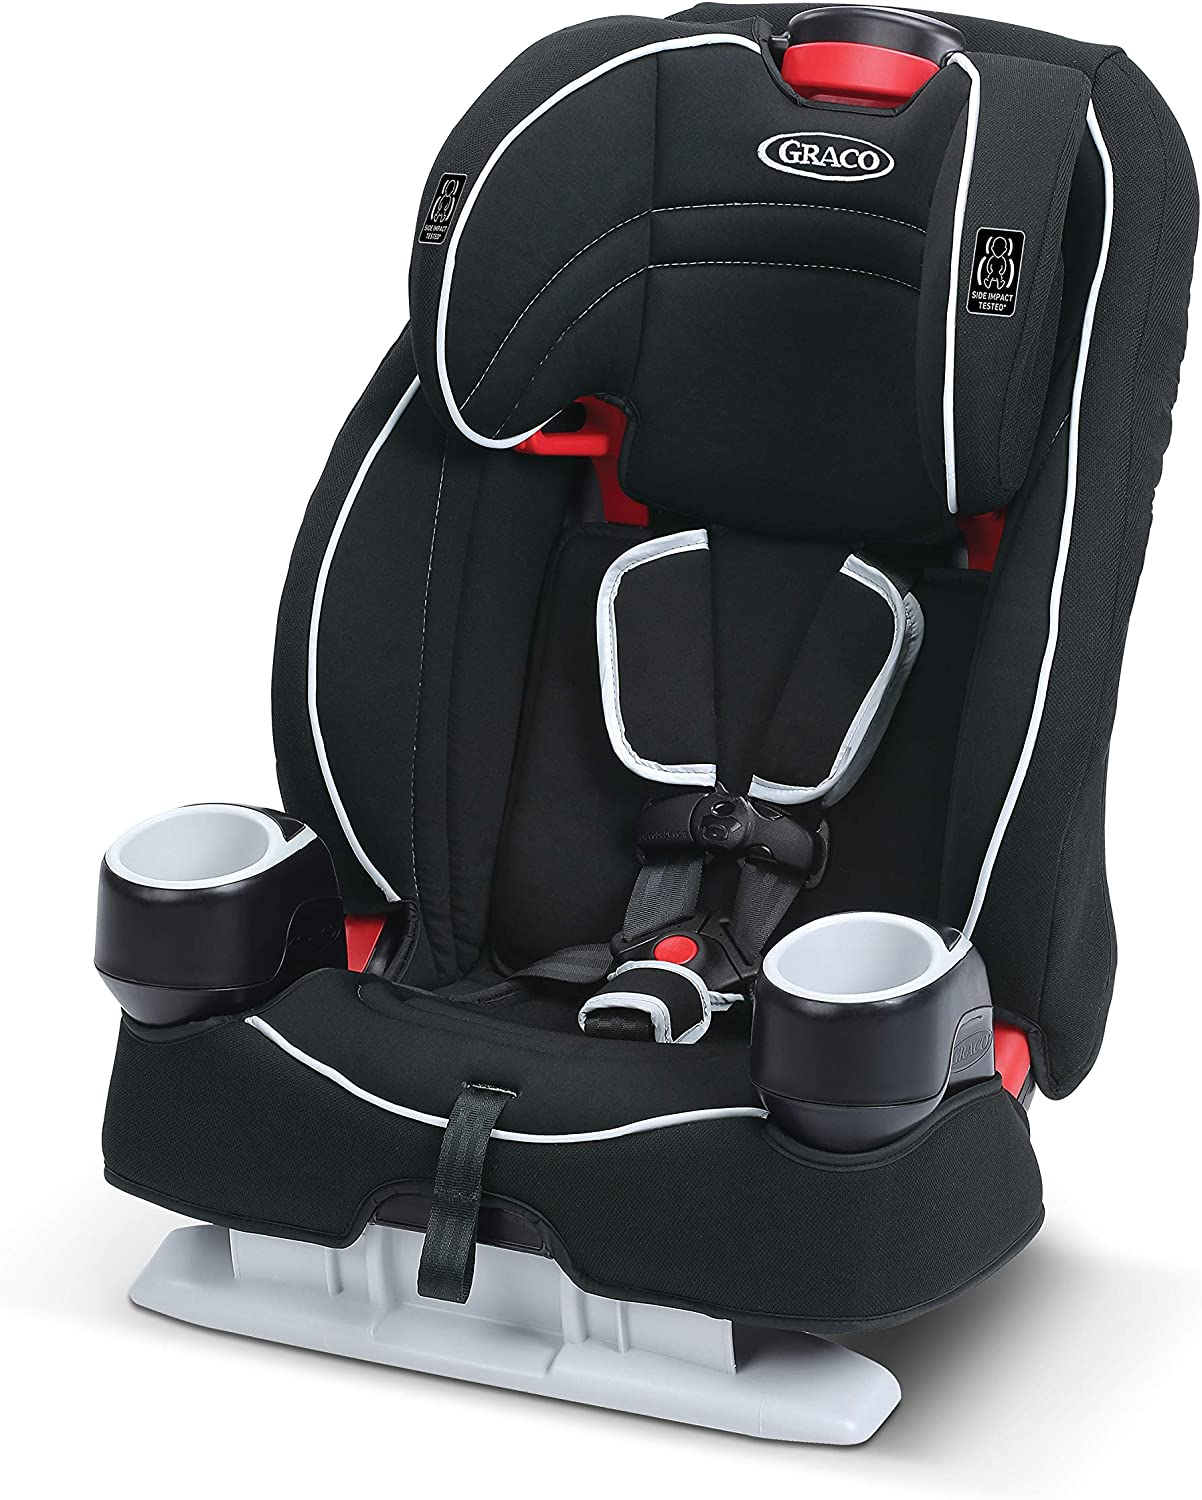 Graco Atlas 65 2-in-1 Harness Booster Car Seat, Glacier